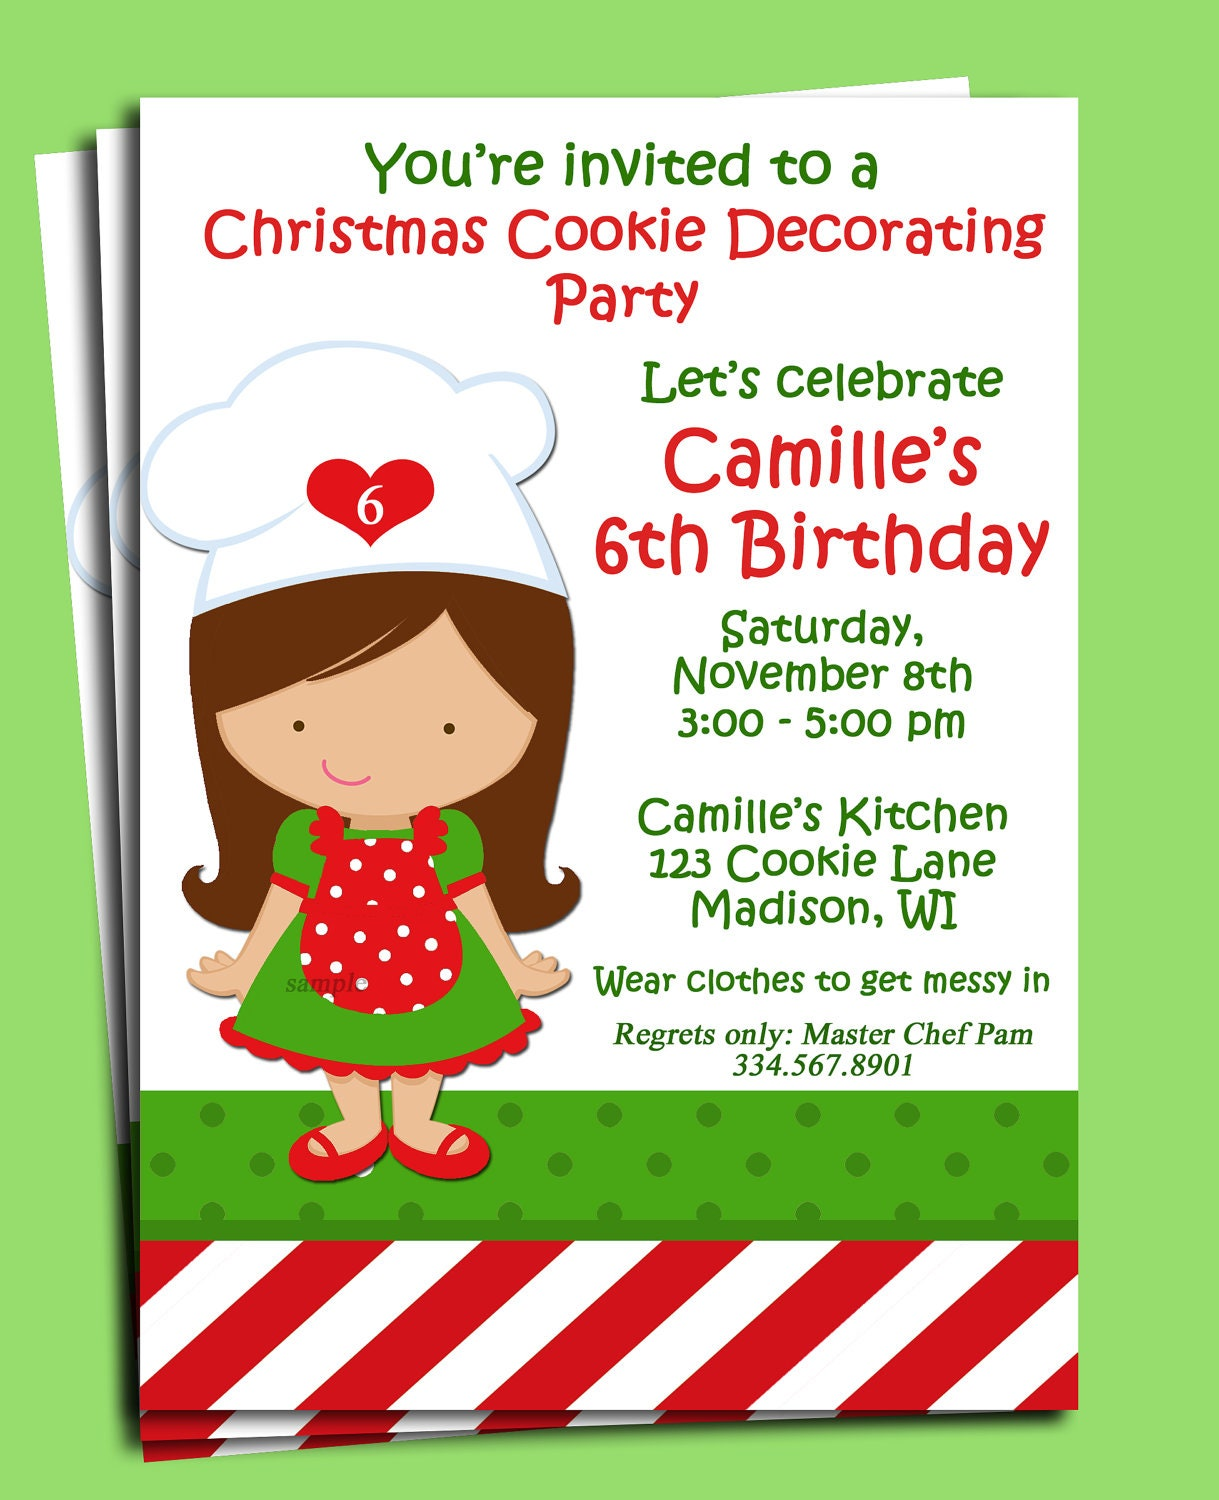 Christmas Cookie Decorating Party Invitation Wording: Christmas ...